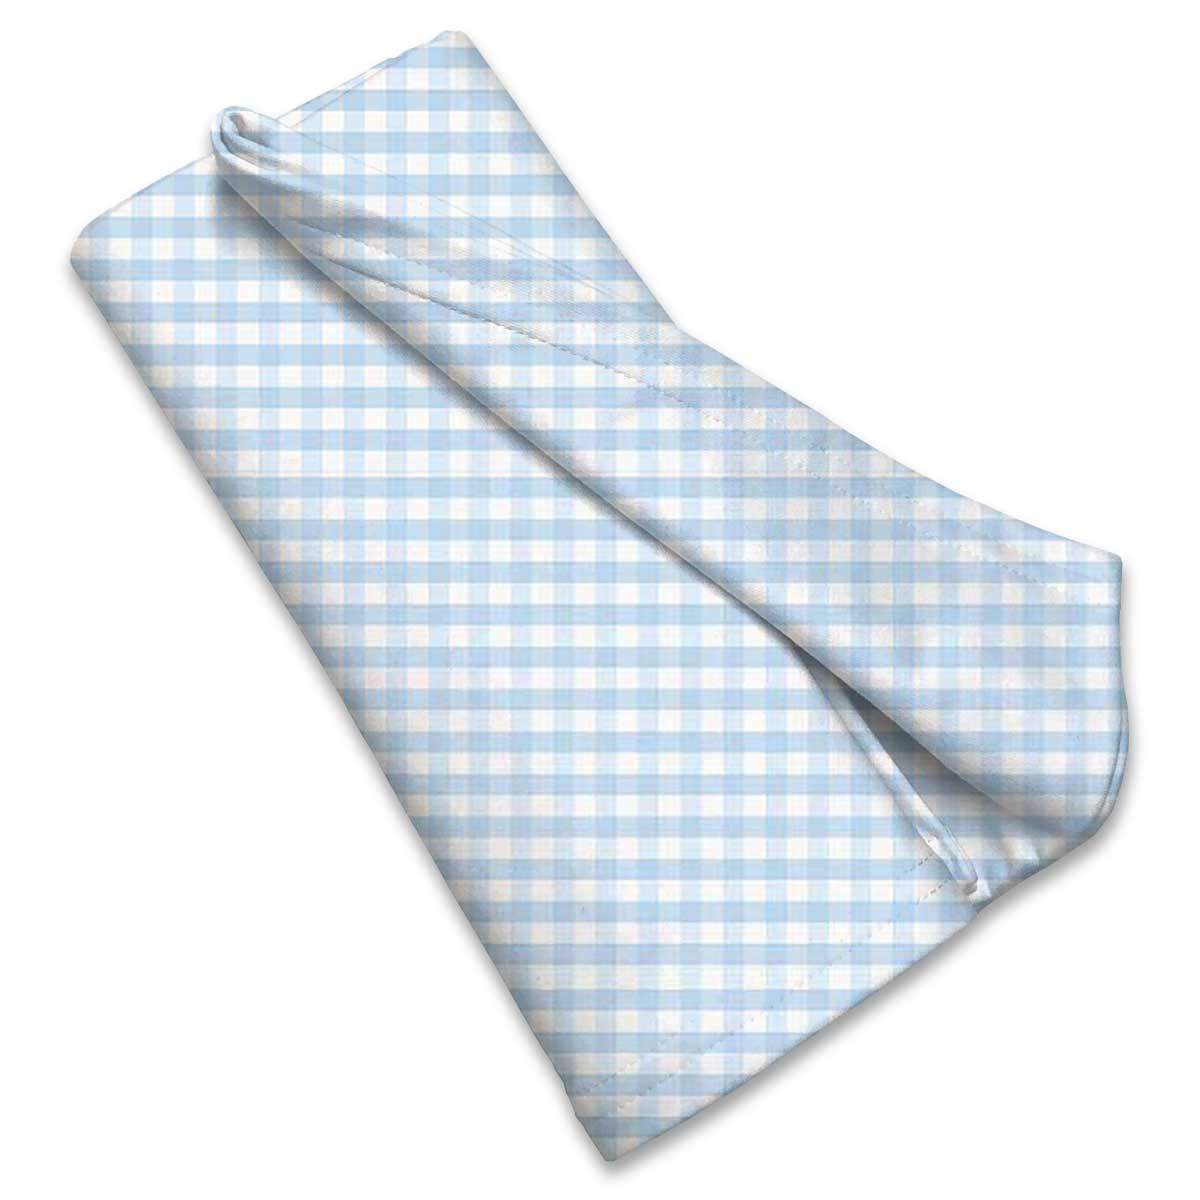 Blue Gingham Check Receiving Blanket